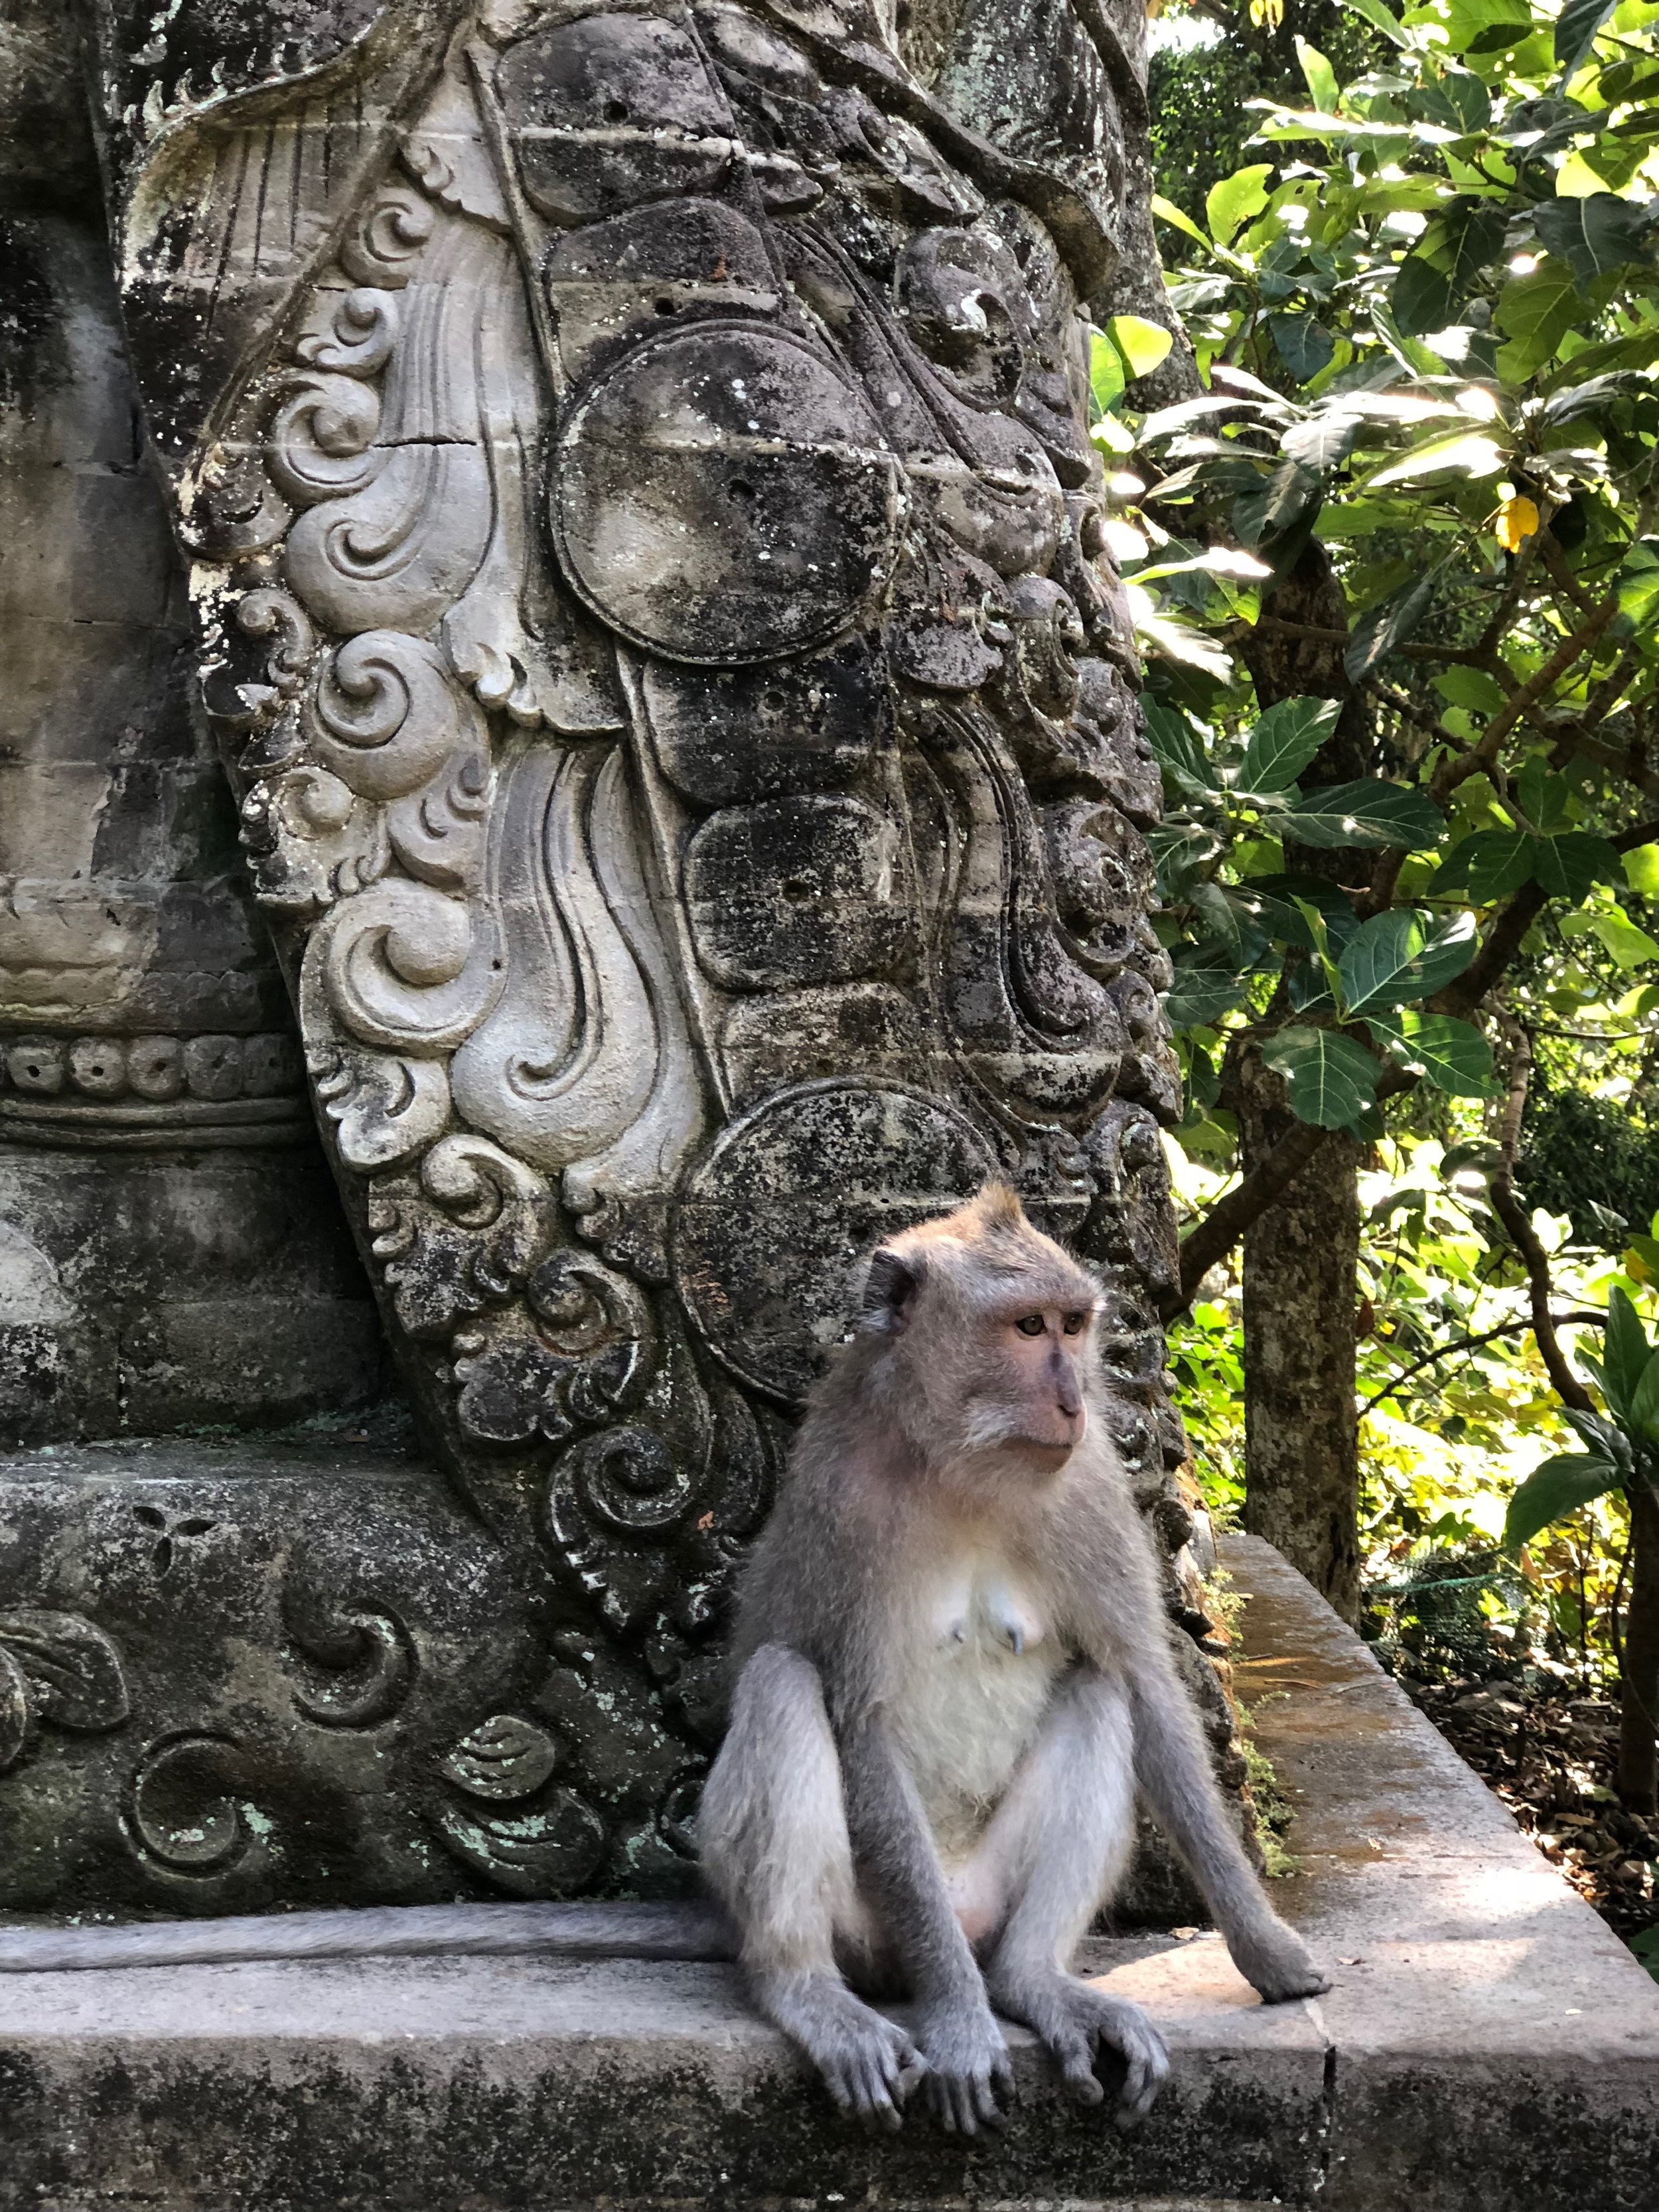 Gorgeous stonework and mischievous macaques abound in the Monkey Forest